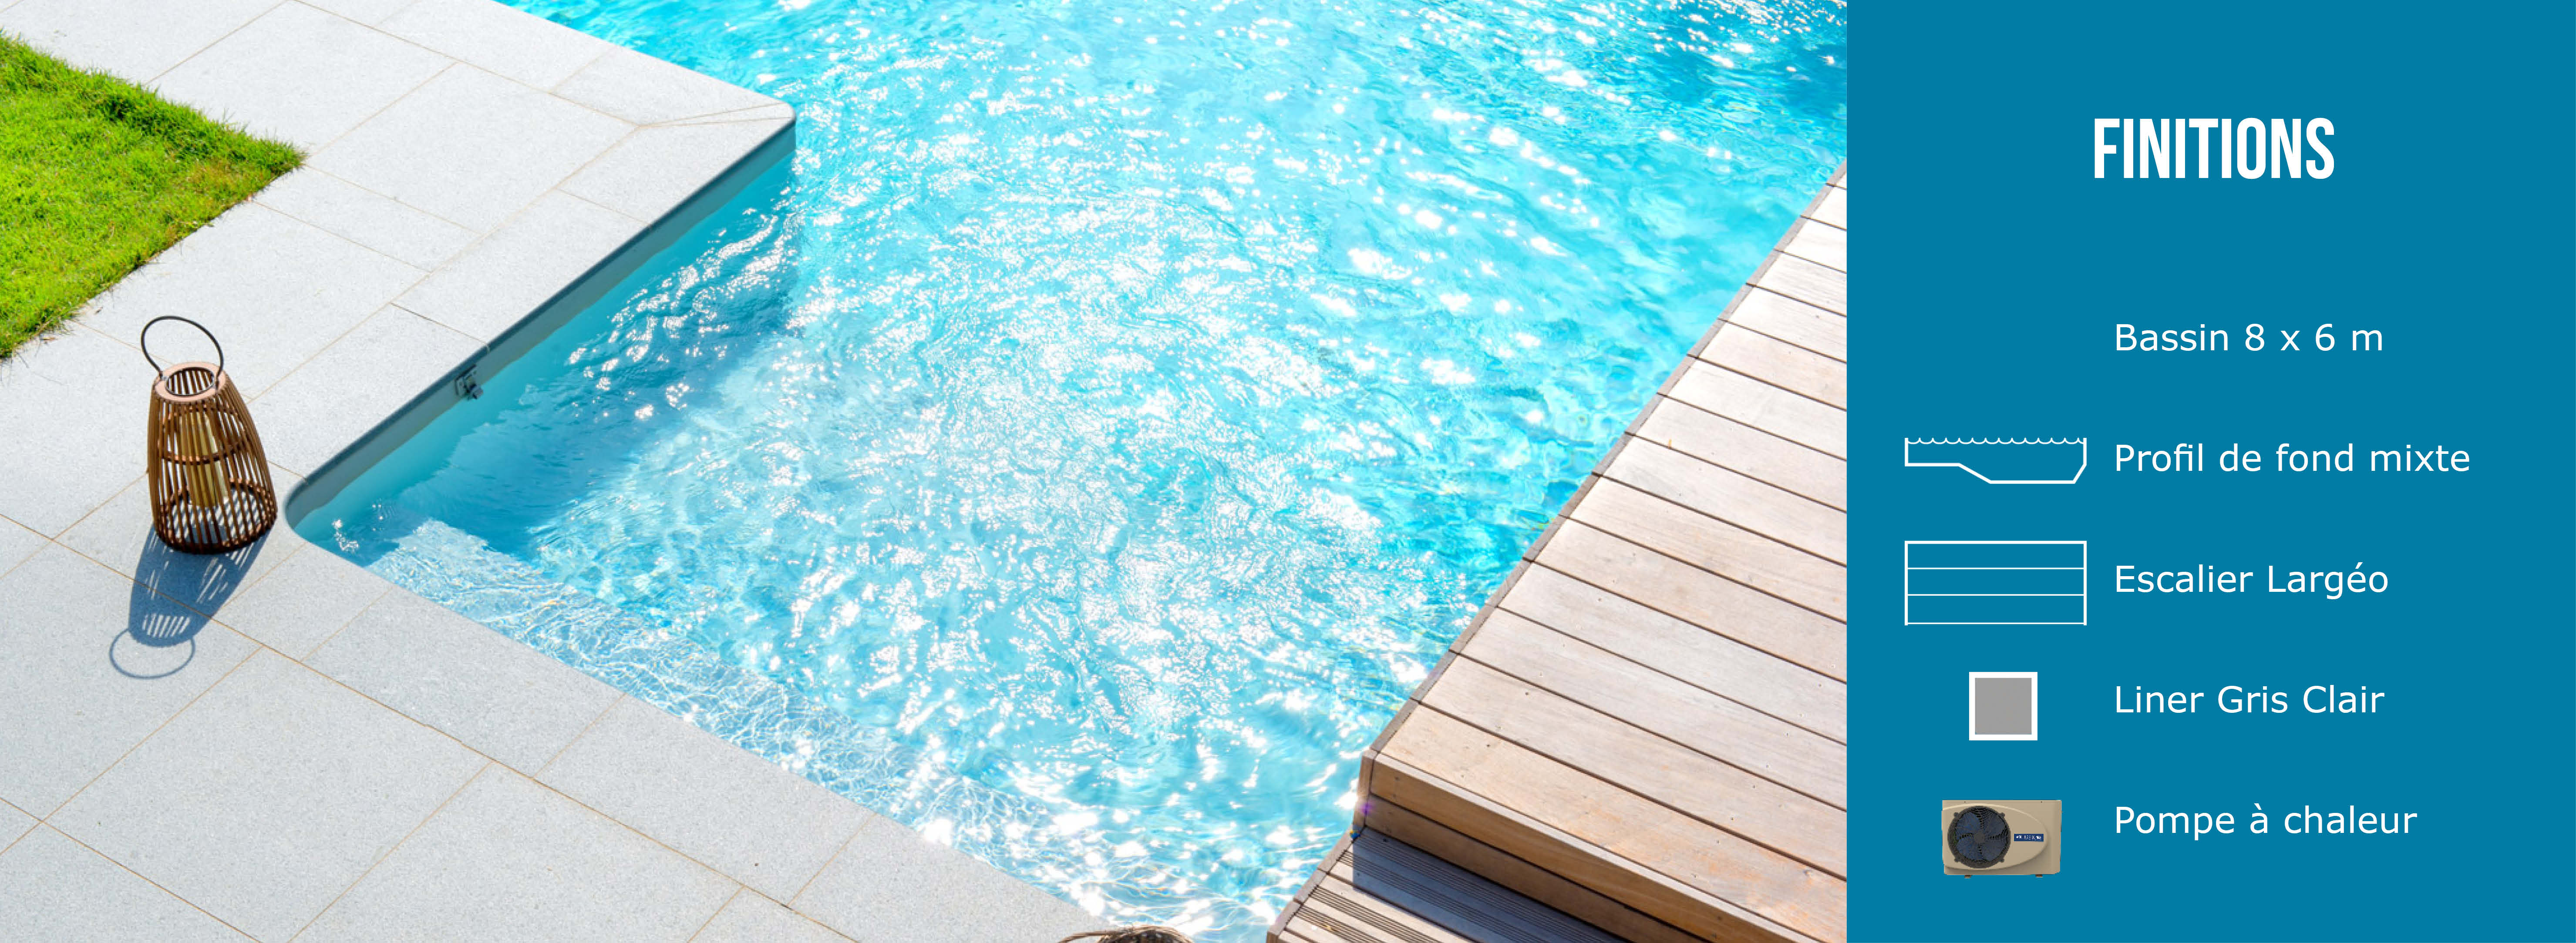 Finitions piscine Maldives - Aquilus Valence